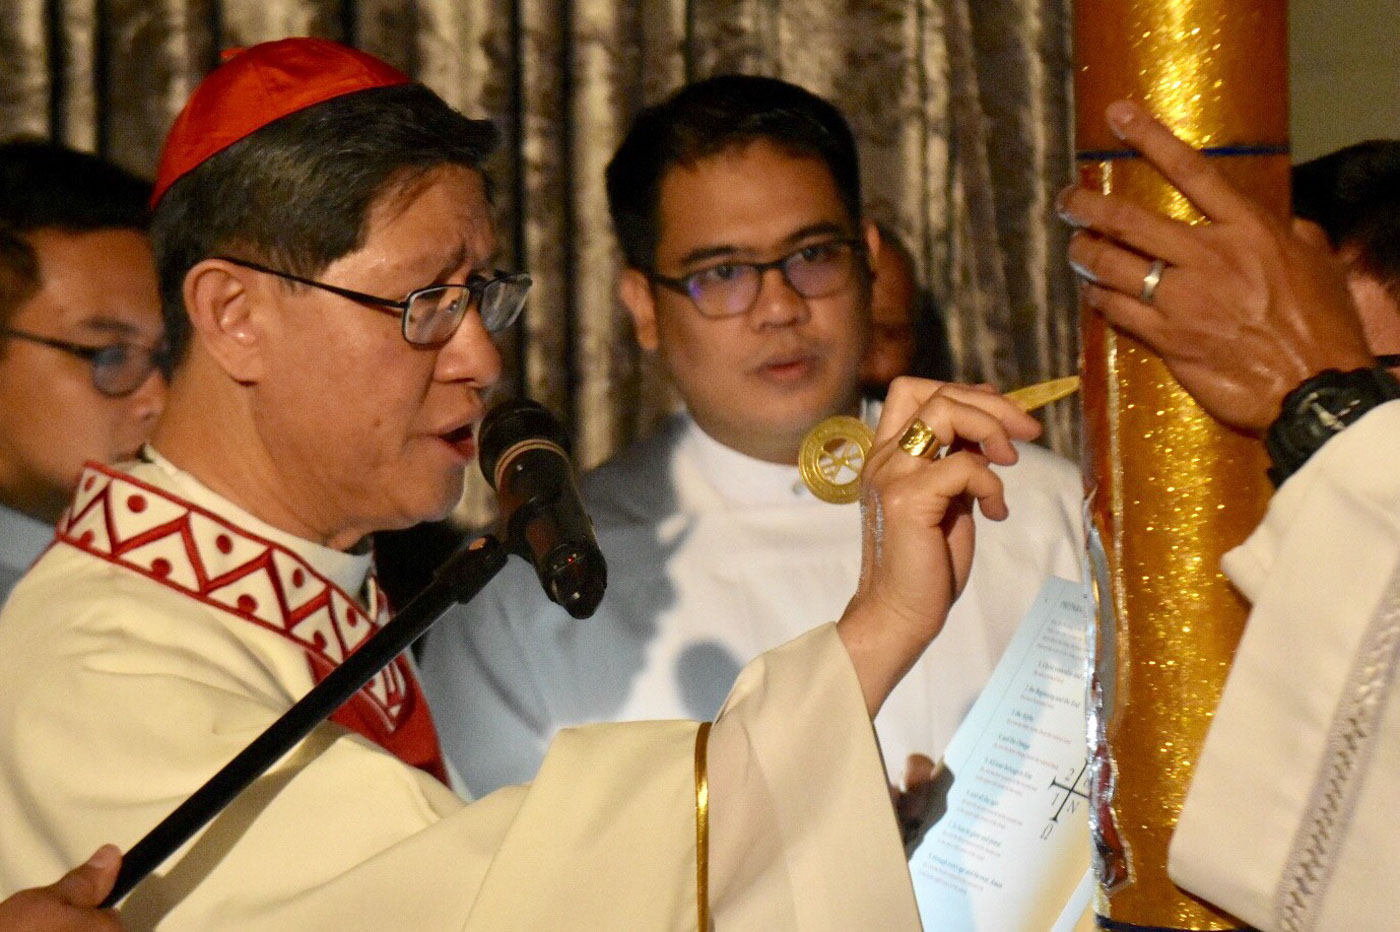 Manila Archbishop Luis Antonio Cardinal Tagle marks the Paschal Candle during the Easter Vigil Mass at the Manila Cathedral on April 20, 2019. Photo by Angie de Silva/Rappler